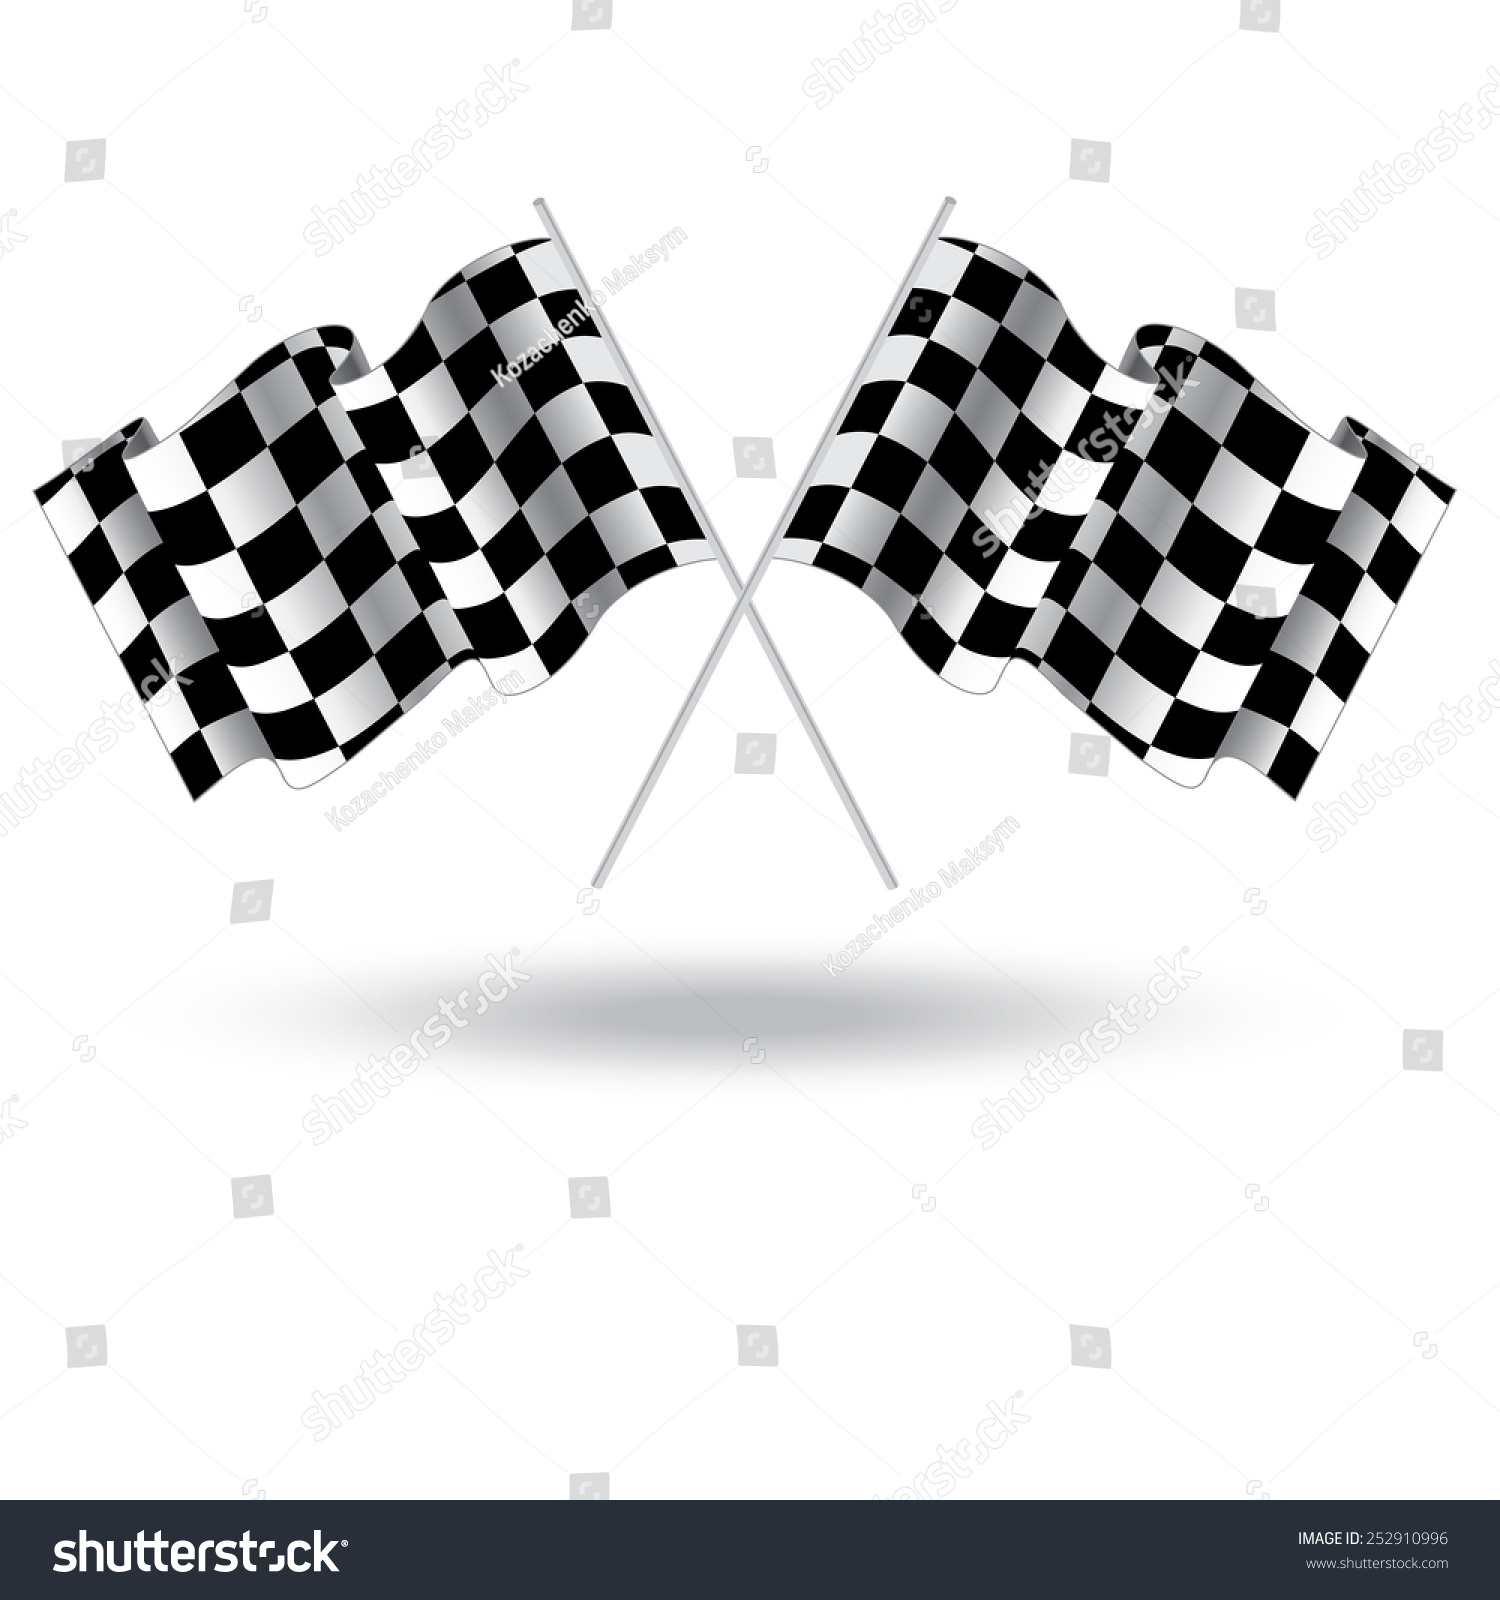 Racing Checkered Flag >> Online Image & Photo Editor - Shutterstock Editor